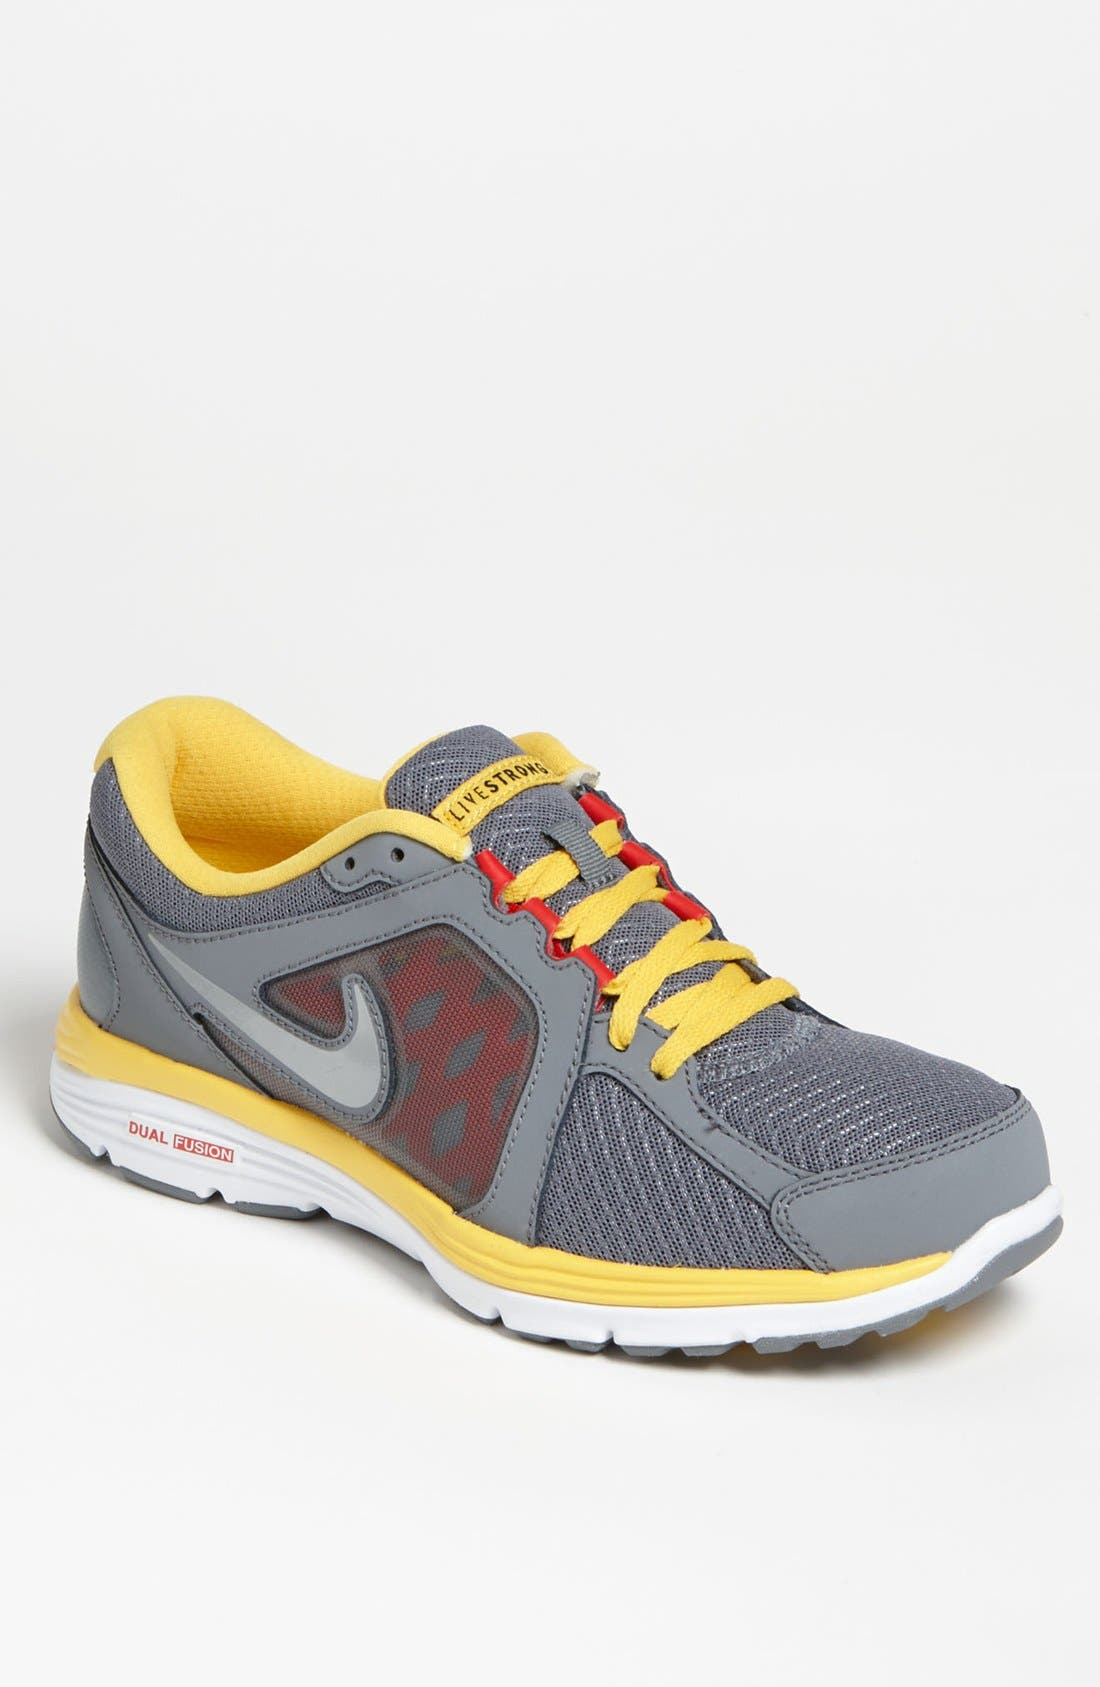 Main Image - Nike 'Dual Fusion Run Livestrong' Running Shoe (Men)